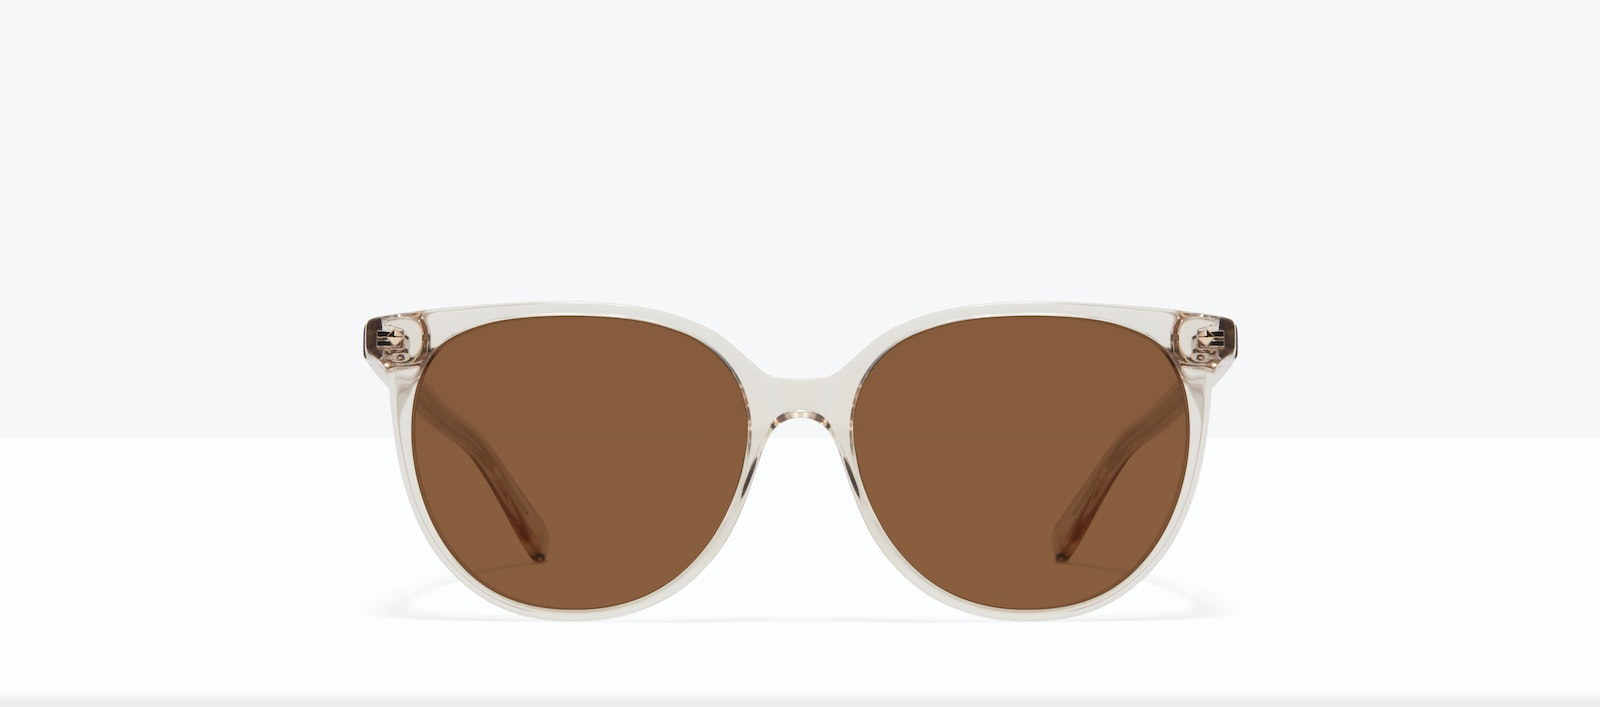 Affordable Fashion Glasses Round Sunglasses Women Area L Blond Front